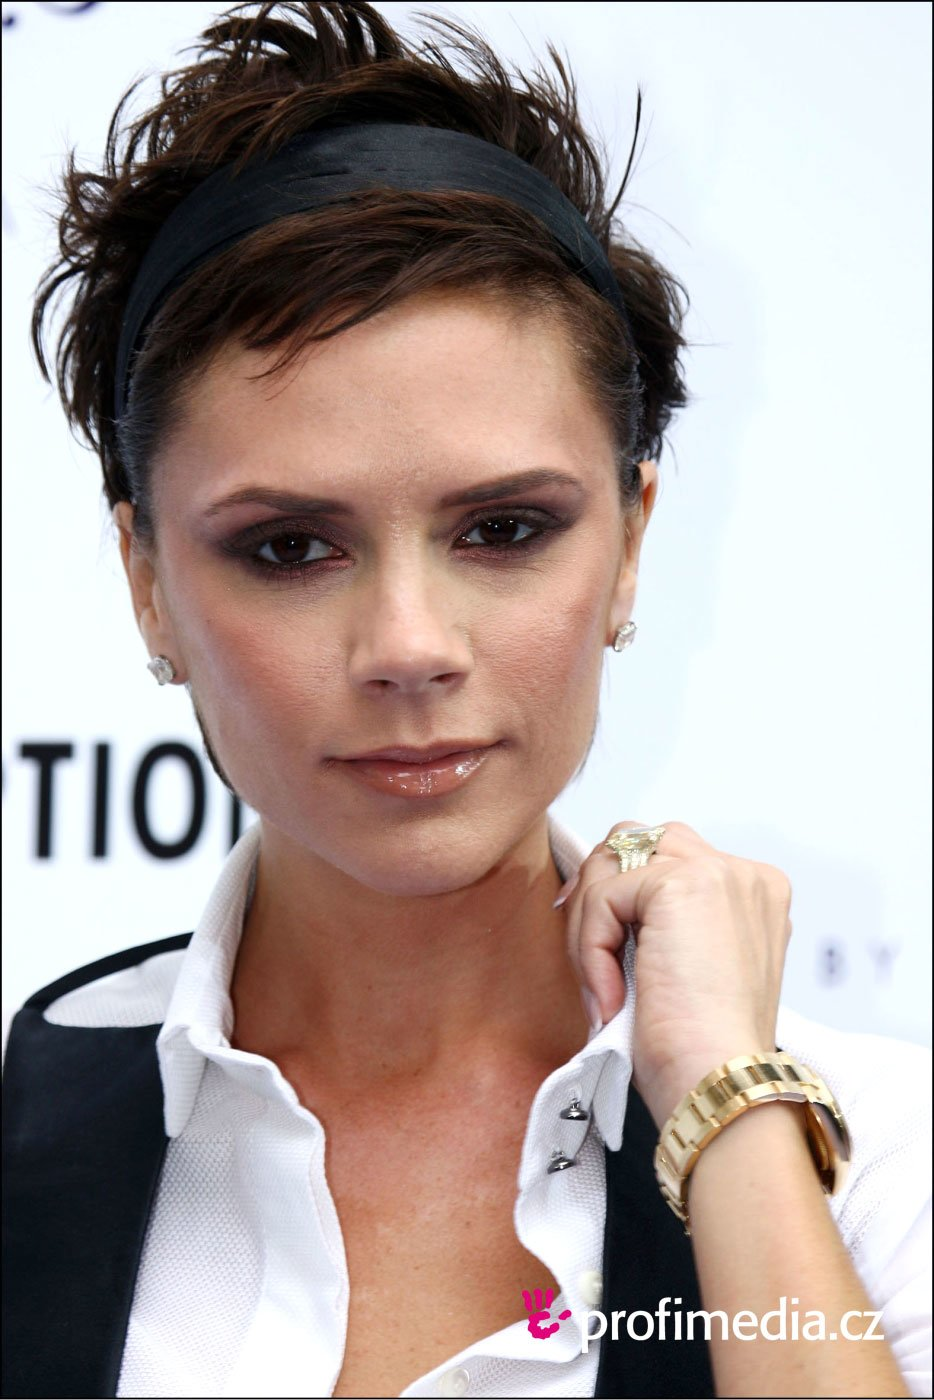 The Best Celebrity Hairstyles Victoria Beckham Hairstyle Preview Pictures